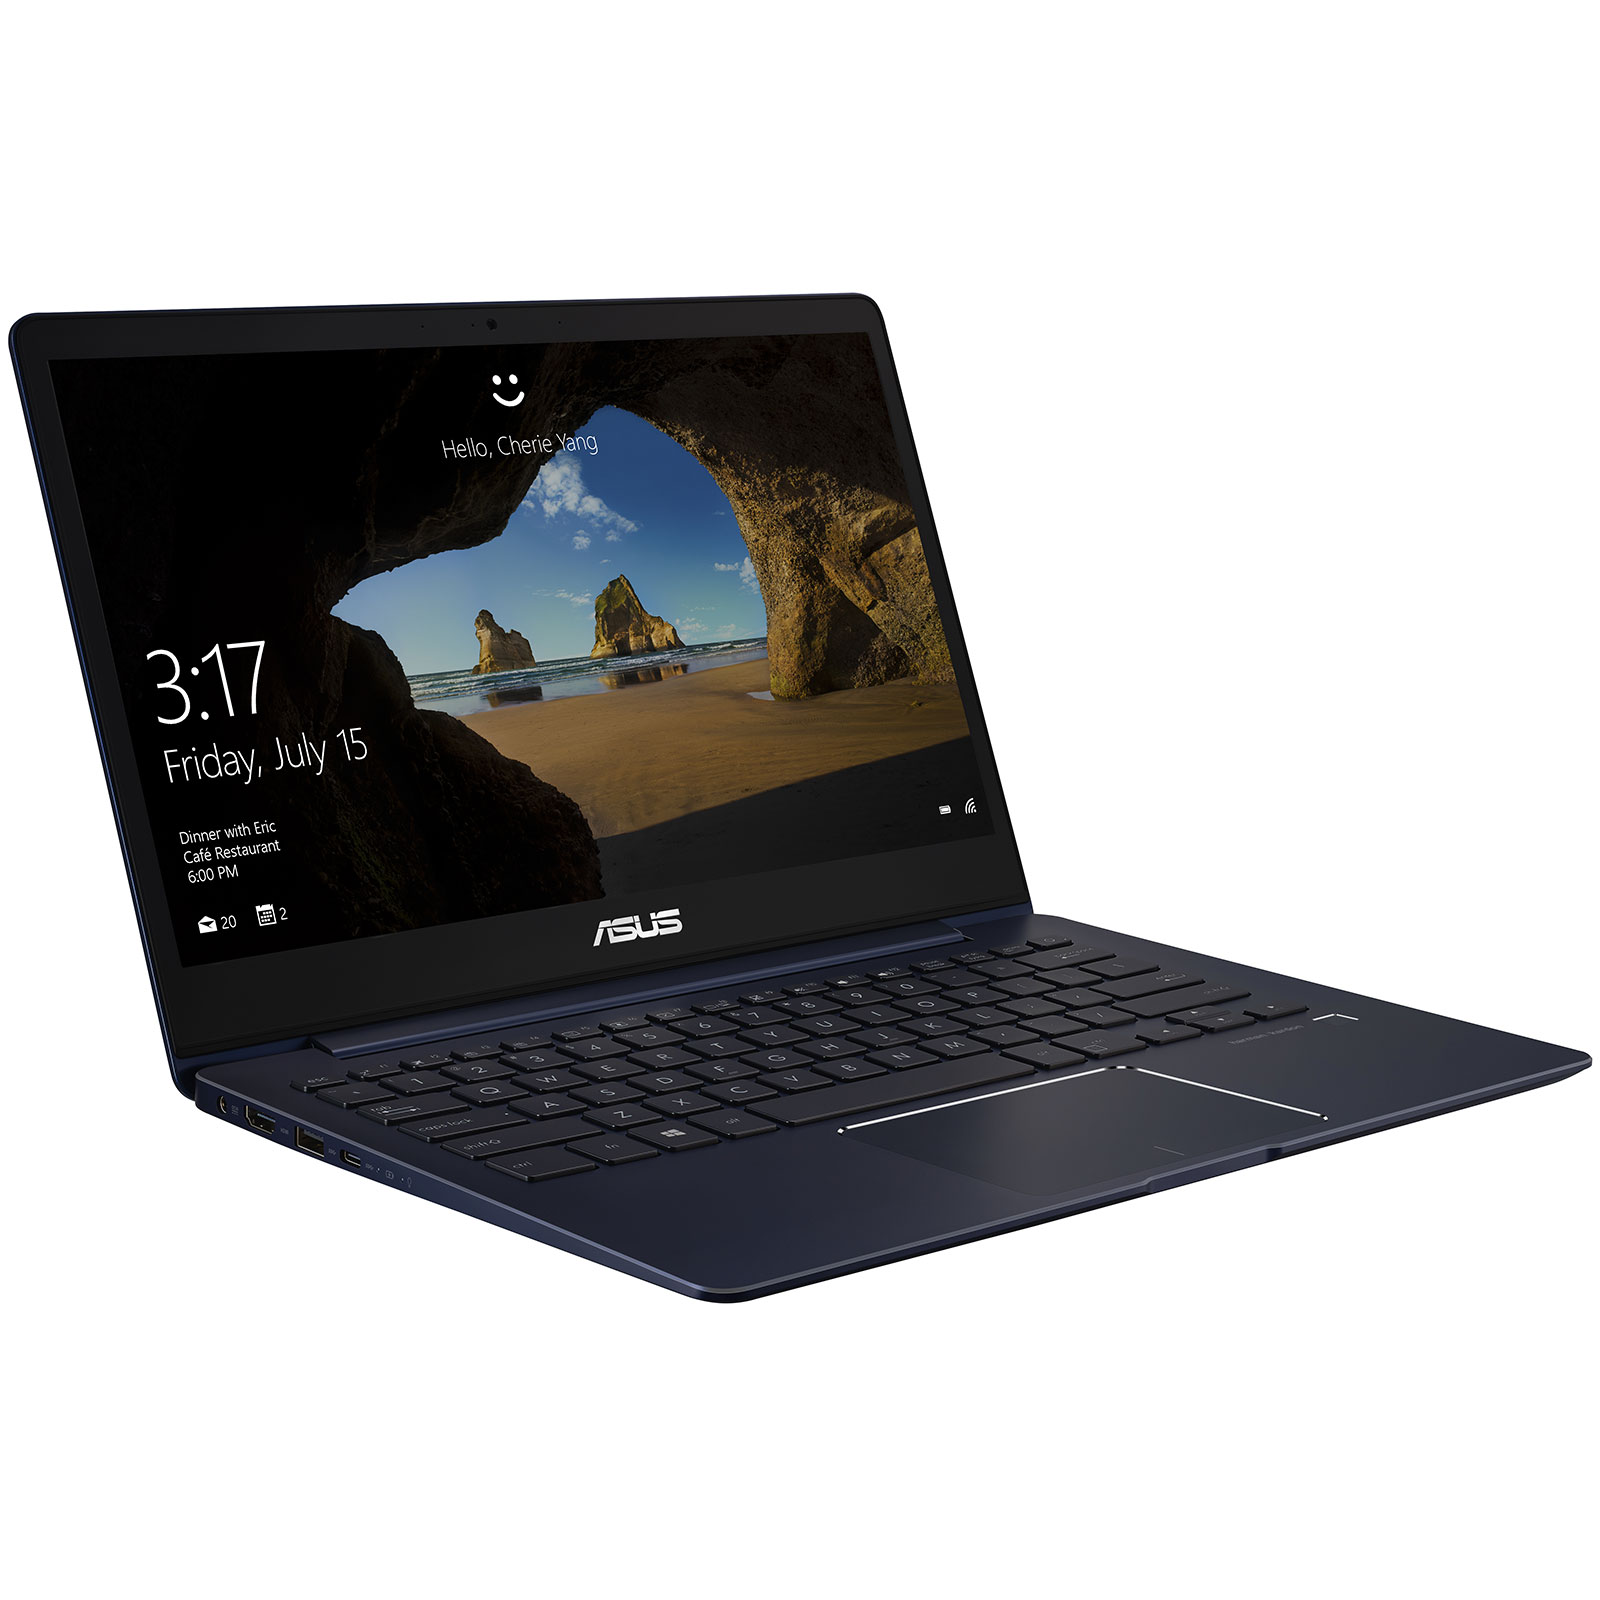 asus zenbook 13 ux331ua eg013t pc portable asus sur. Black Bedroom Furniture Sets. Home Design Ideas